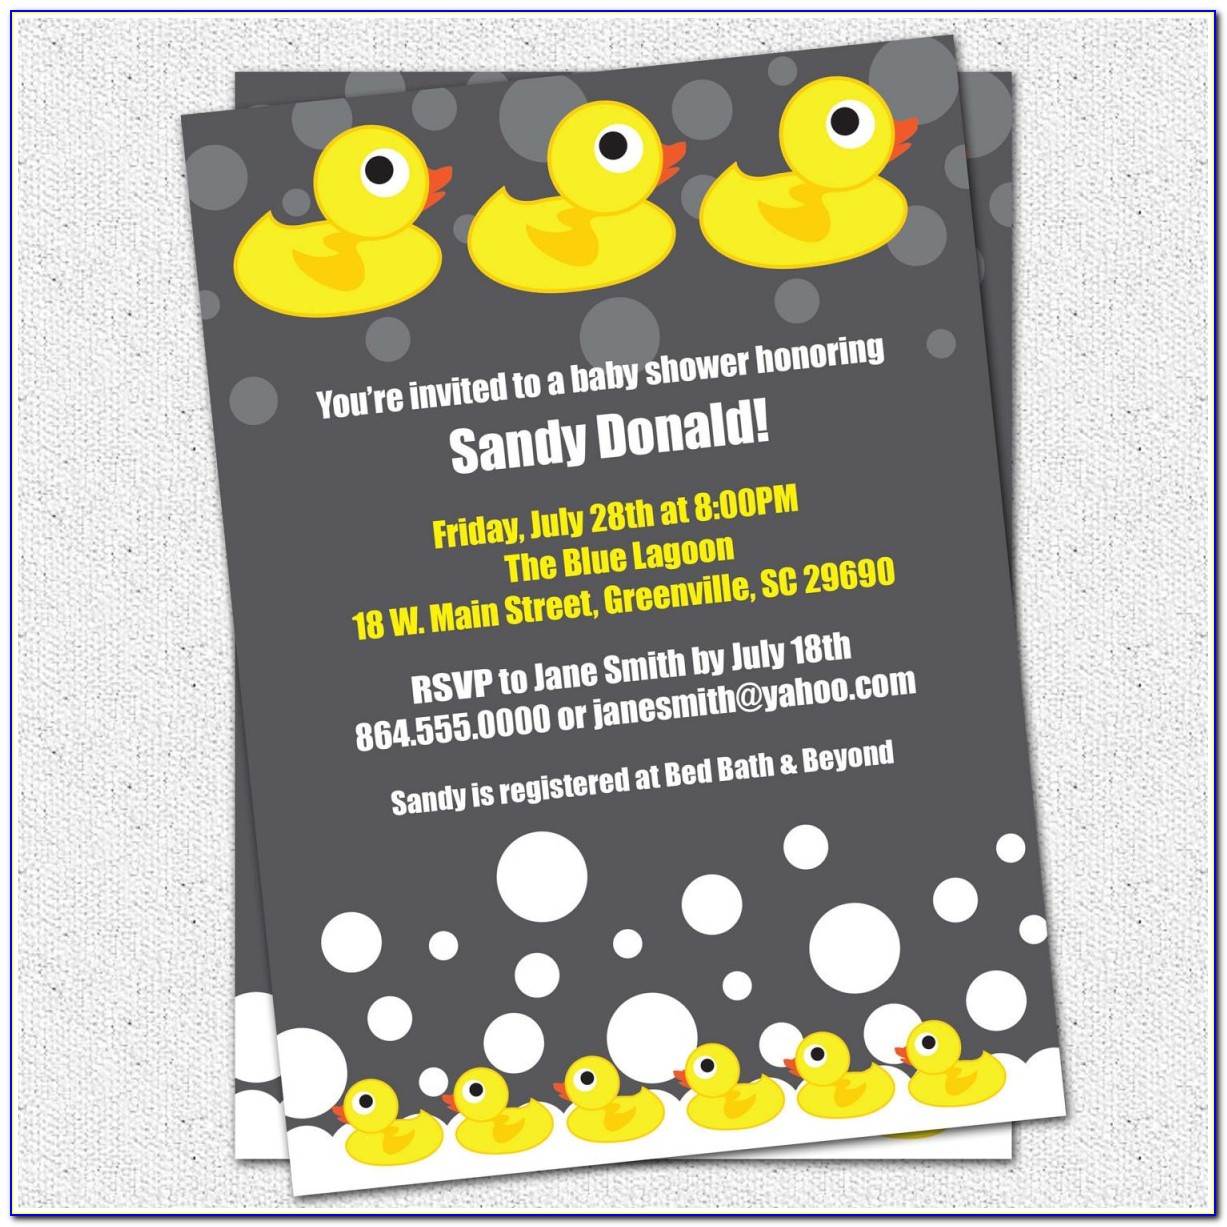 Rubber Duck Baby Shower Invitations Template New Baby Shower Invitation Printable Rubber Duck Ducky Duckie